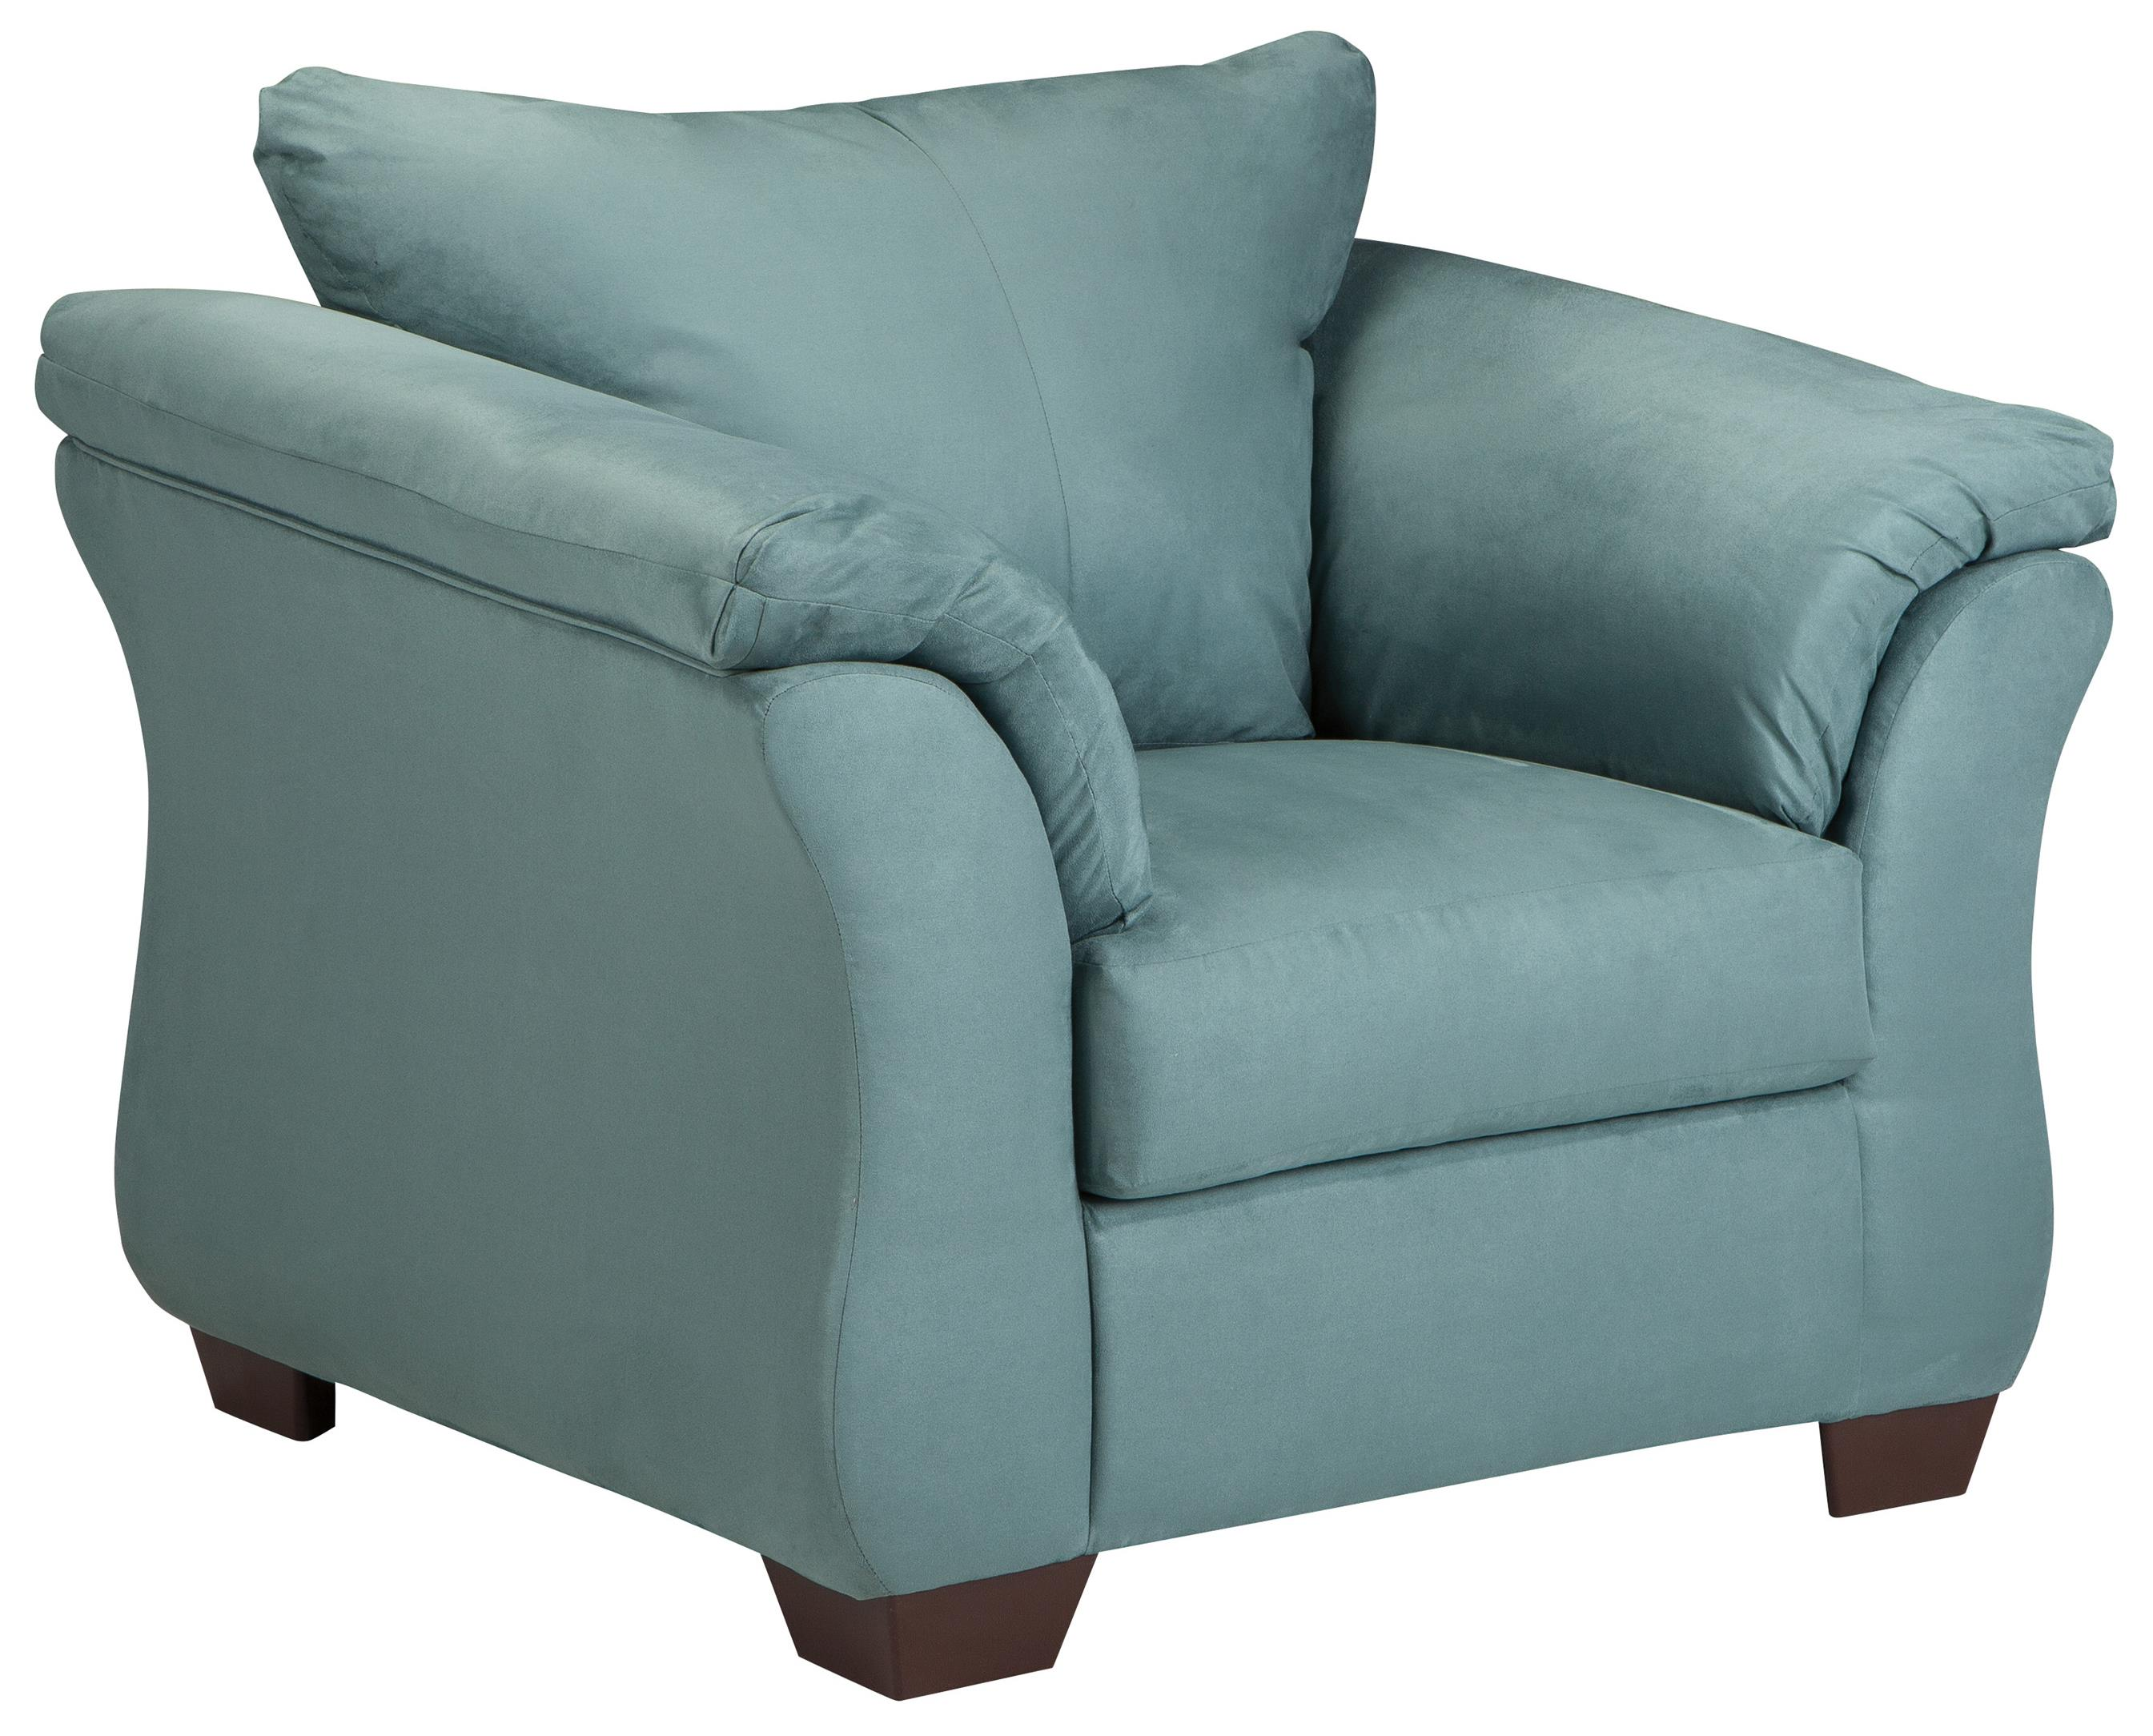 Darcy - Sky Upholstered Chair by Ashley (Signature Design) at Johnny Janosik